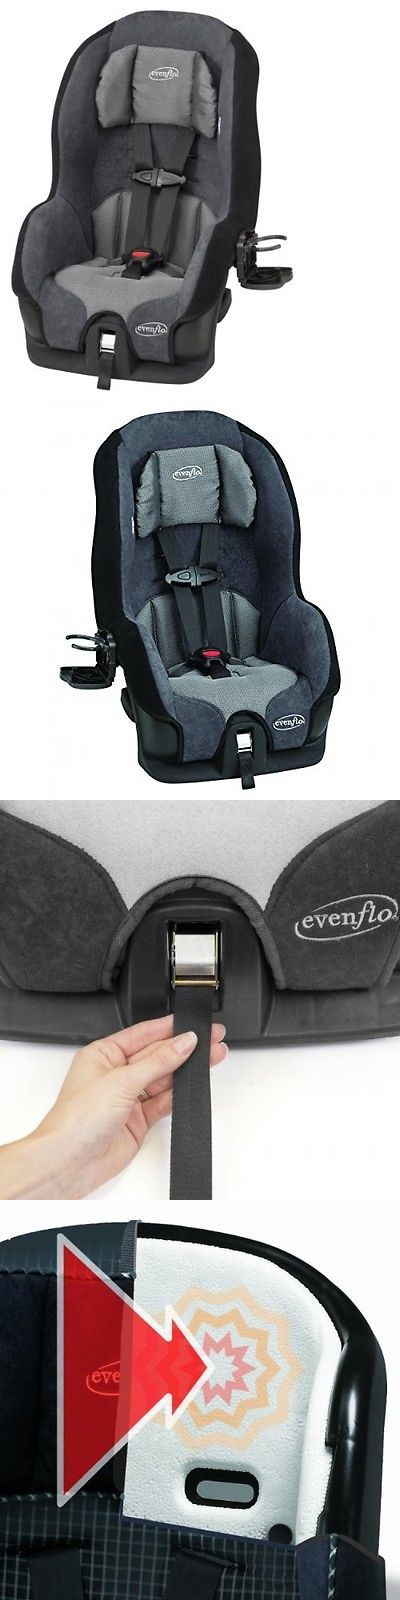 Convertible Car Seat 5-40lbs 66695: Evenflo Tribute Lx Convertible Car Seat, Saturn -> BUY IT NOW ONLY: $55.71 on eBay!